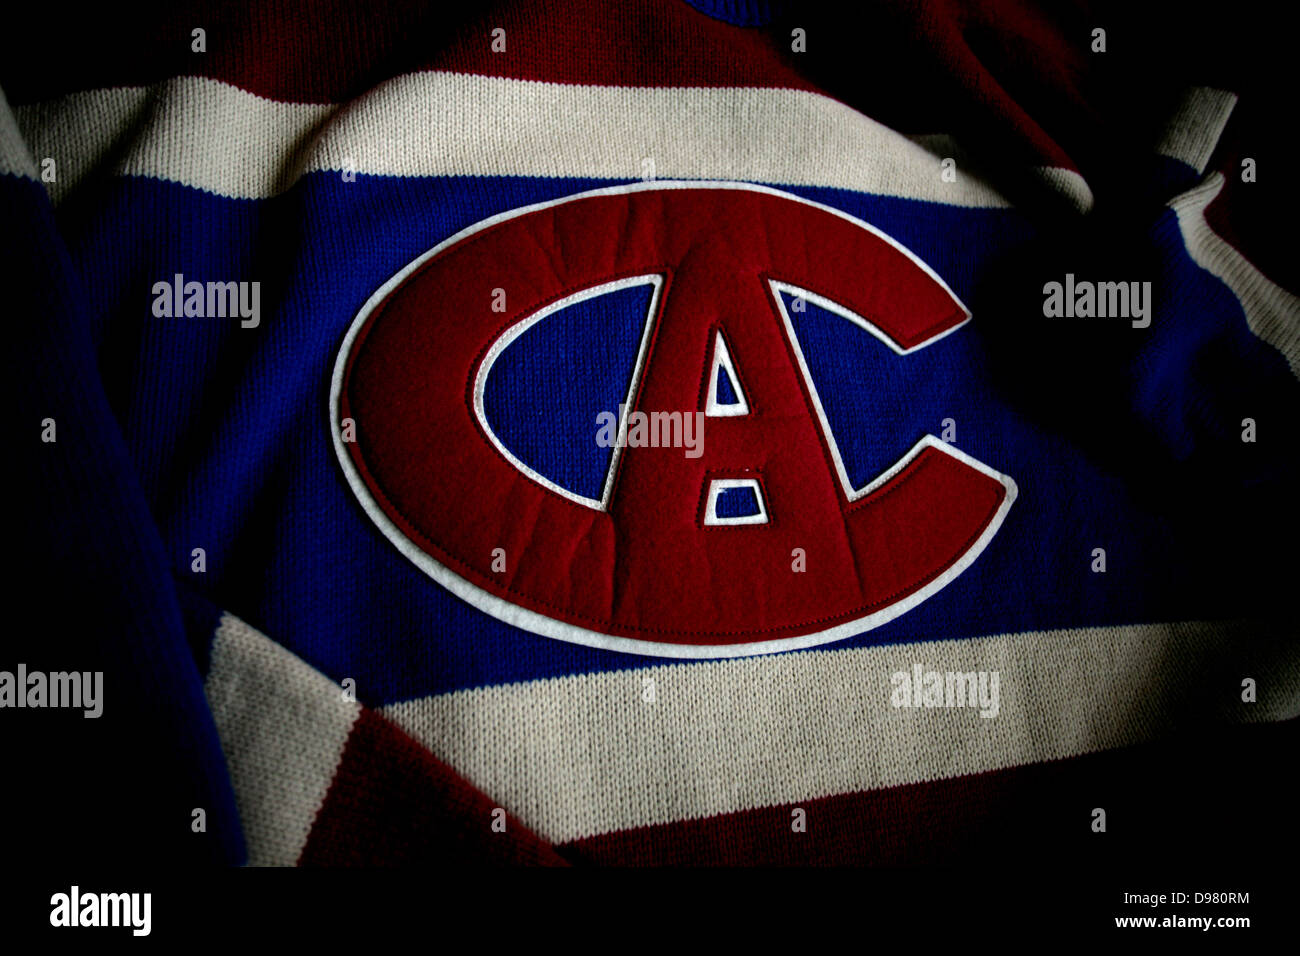 Really. And vintage montreal canadians absolutely not